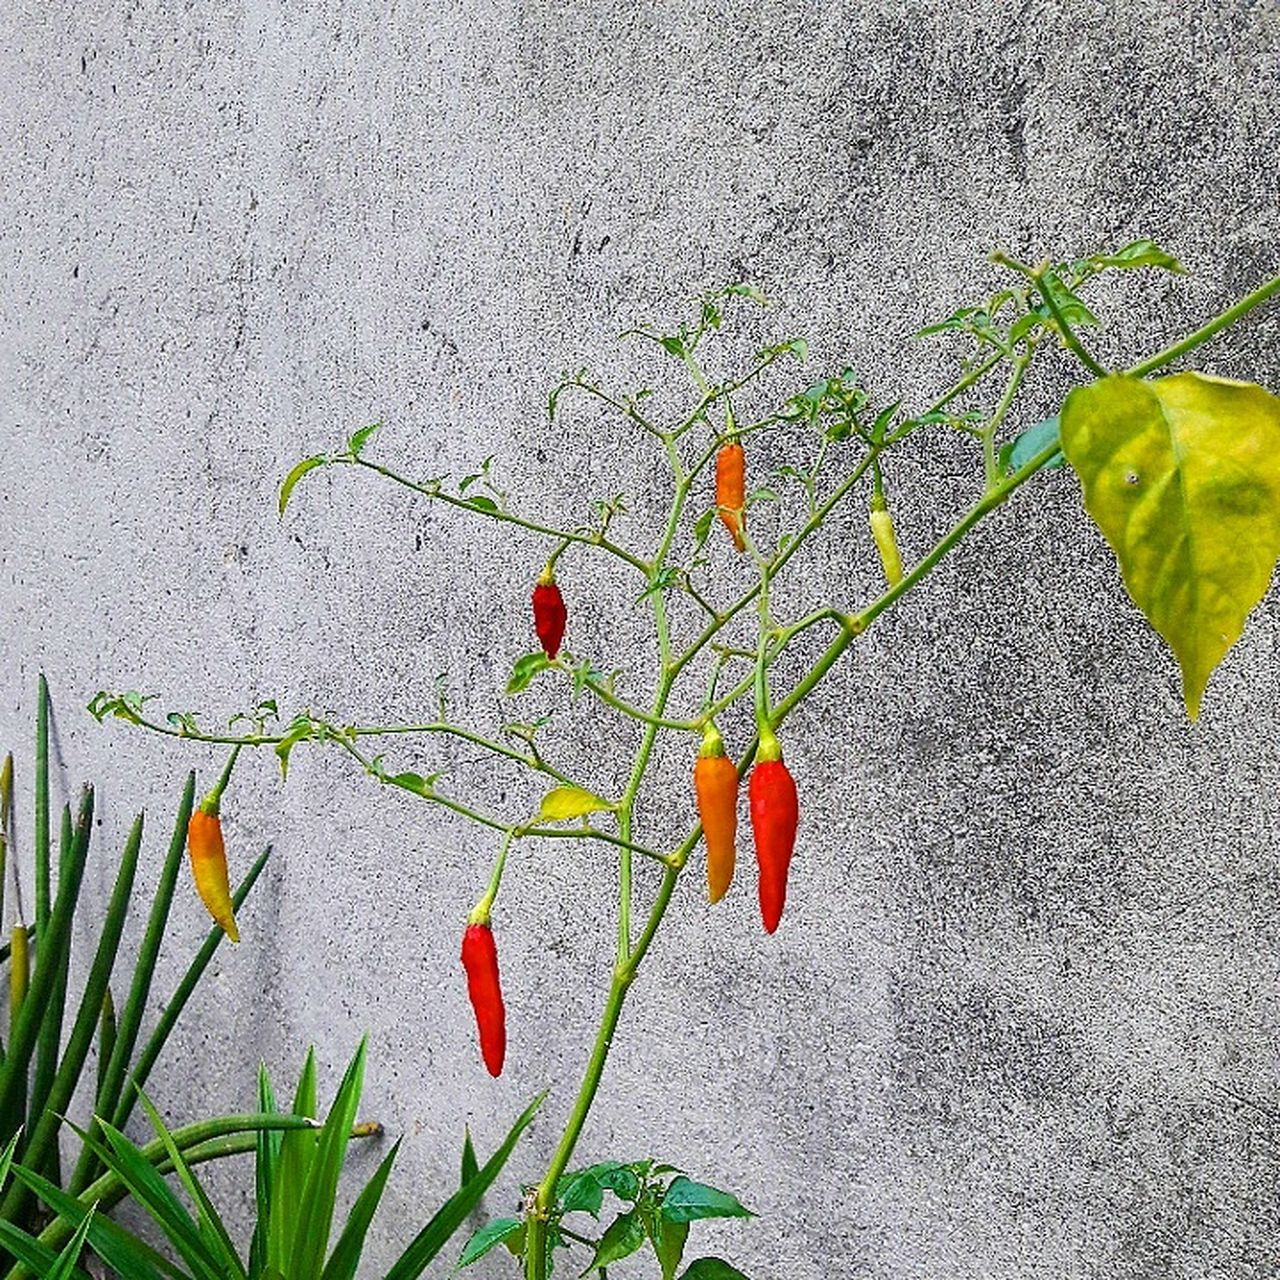 Chillies 🌱♨🔥 The Following Feel The Journey Plants 🌱 HotChilli Hot Garden Nature Healthylife First Eyeem Photo Color Portrait Colour Of Life EyeEm Eyeemphoto